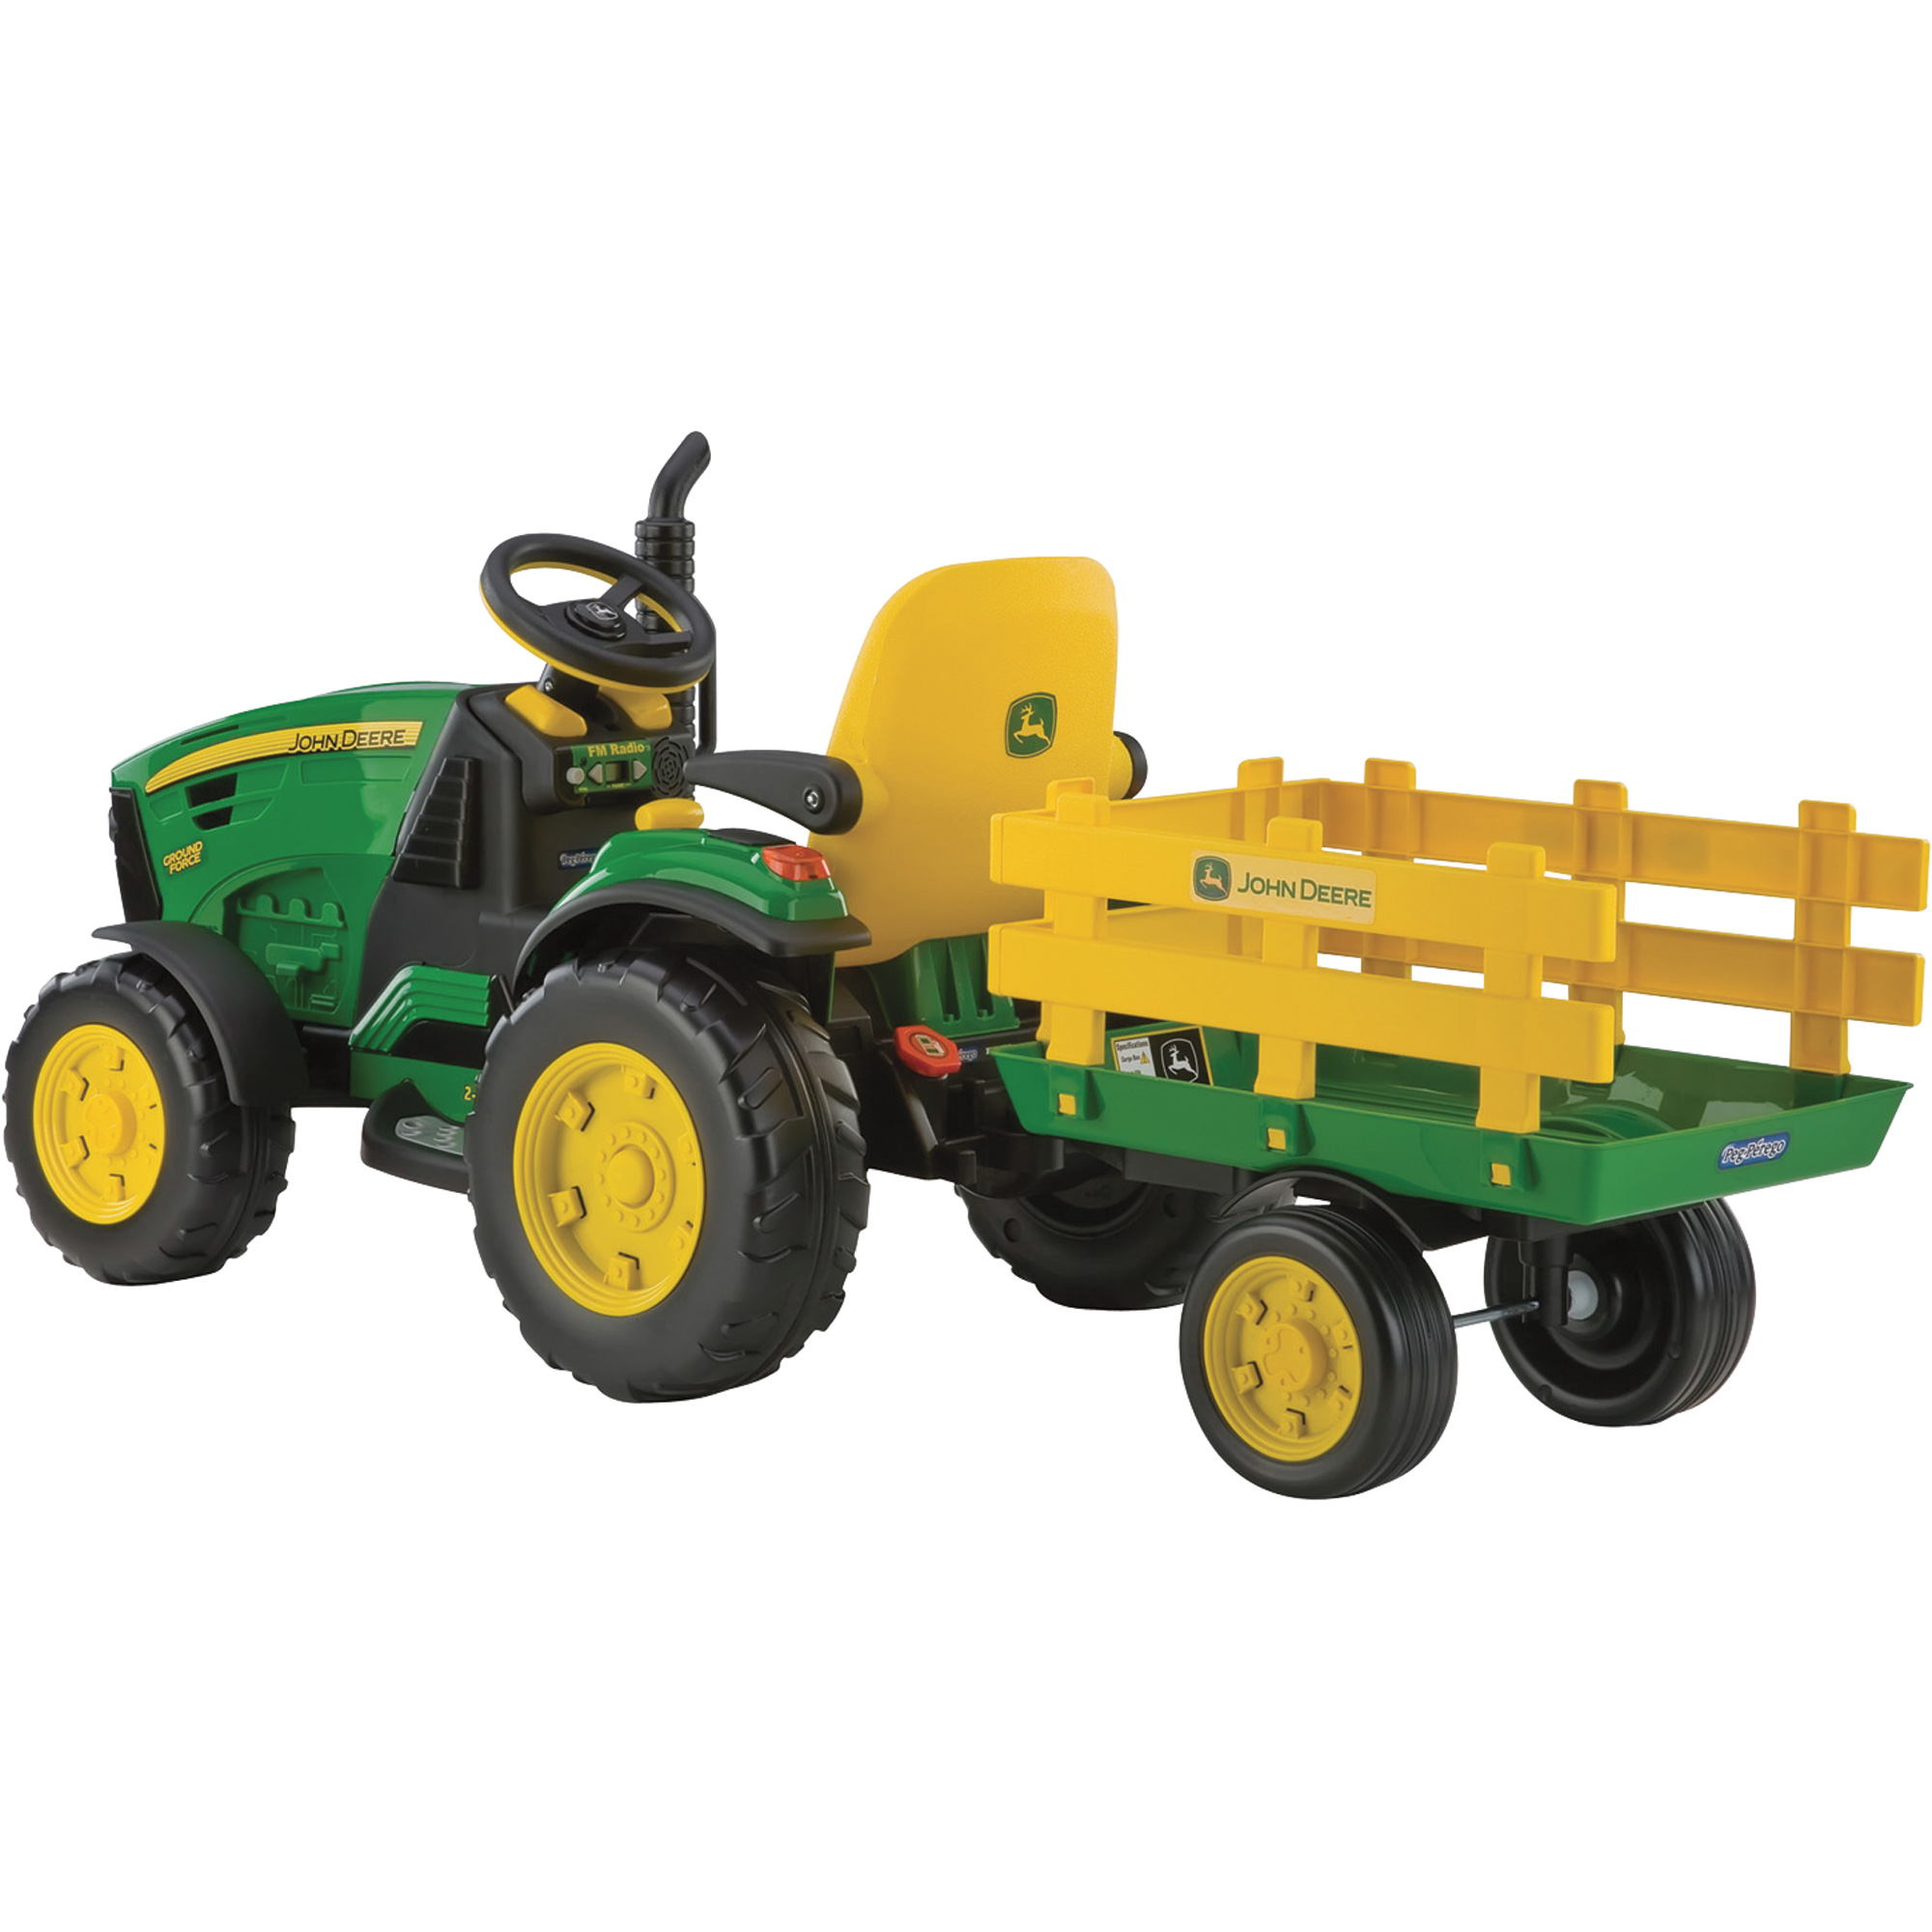 Peg Perego 12 Volt John Deere Ground Force Tractor with Trailer ...